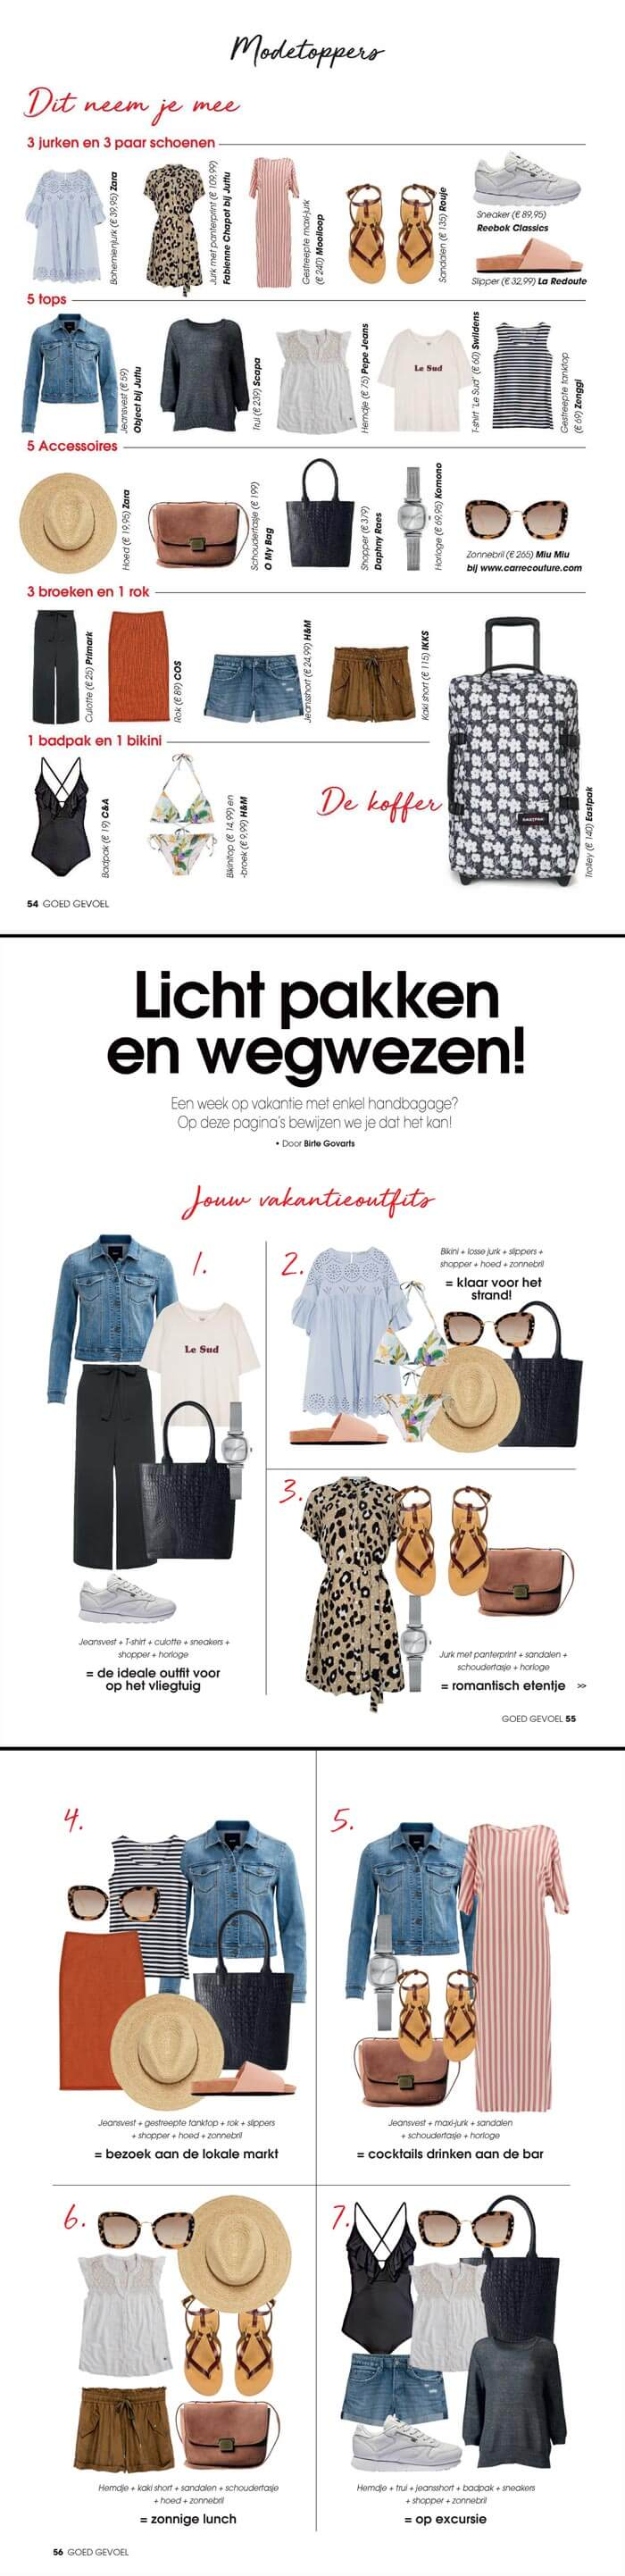 Tote bag Isa black crocodile print featured in Goed Gevoel